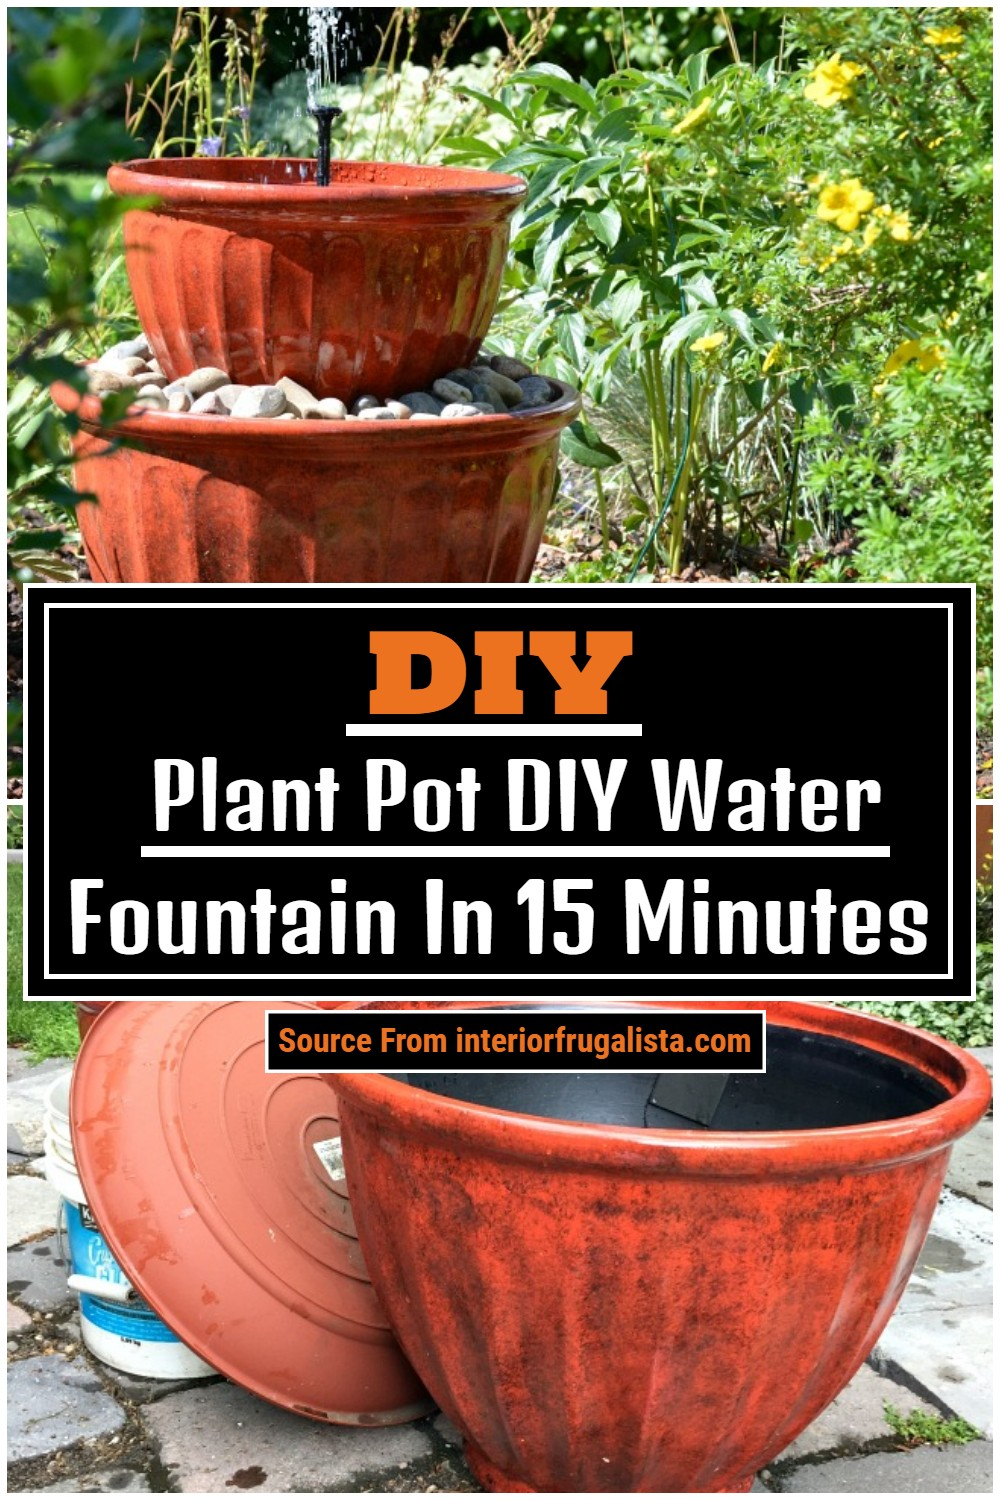 Plant Pot DIY Water Fountain In 15 Minutes